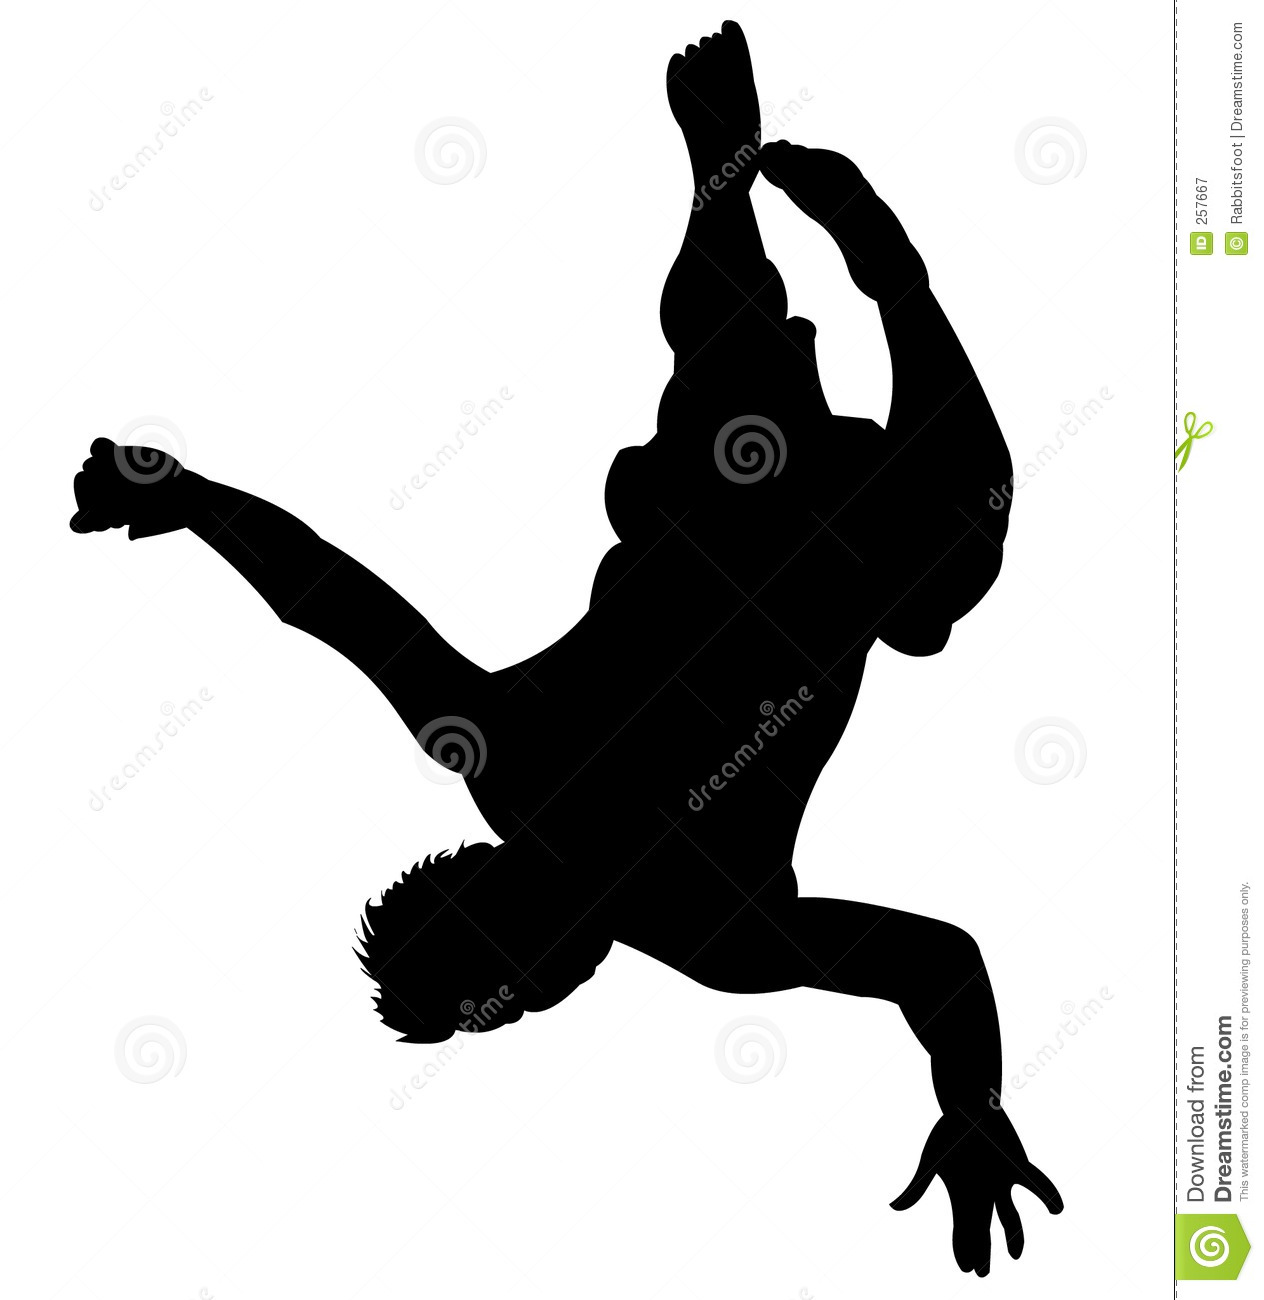 Tumbling Clipart Silhouette Back flip clip art - viewing